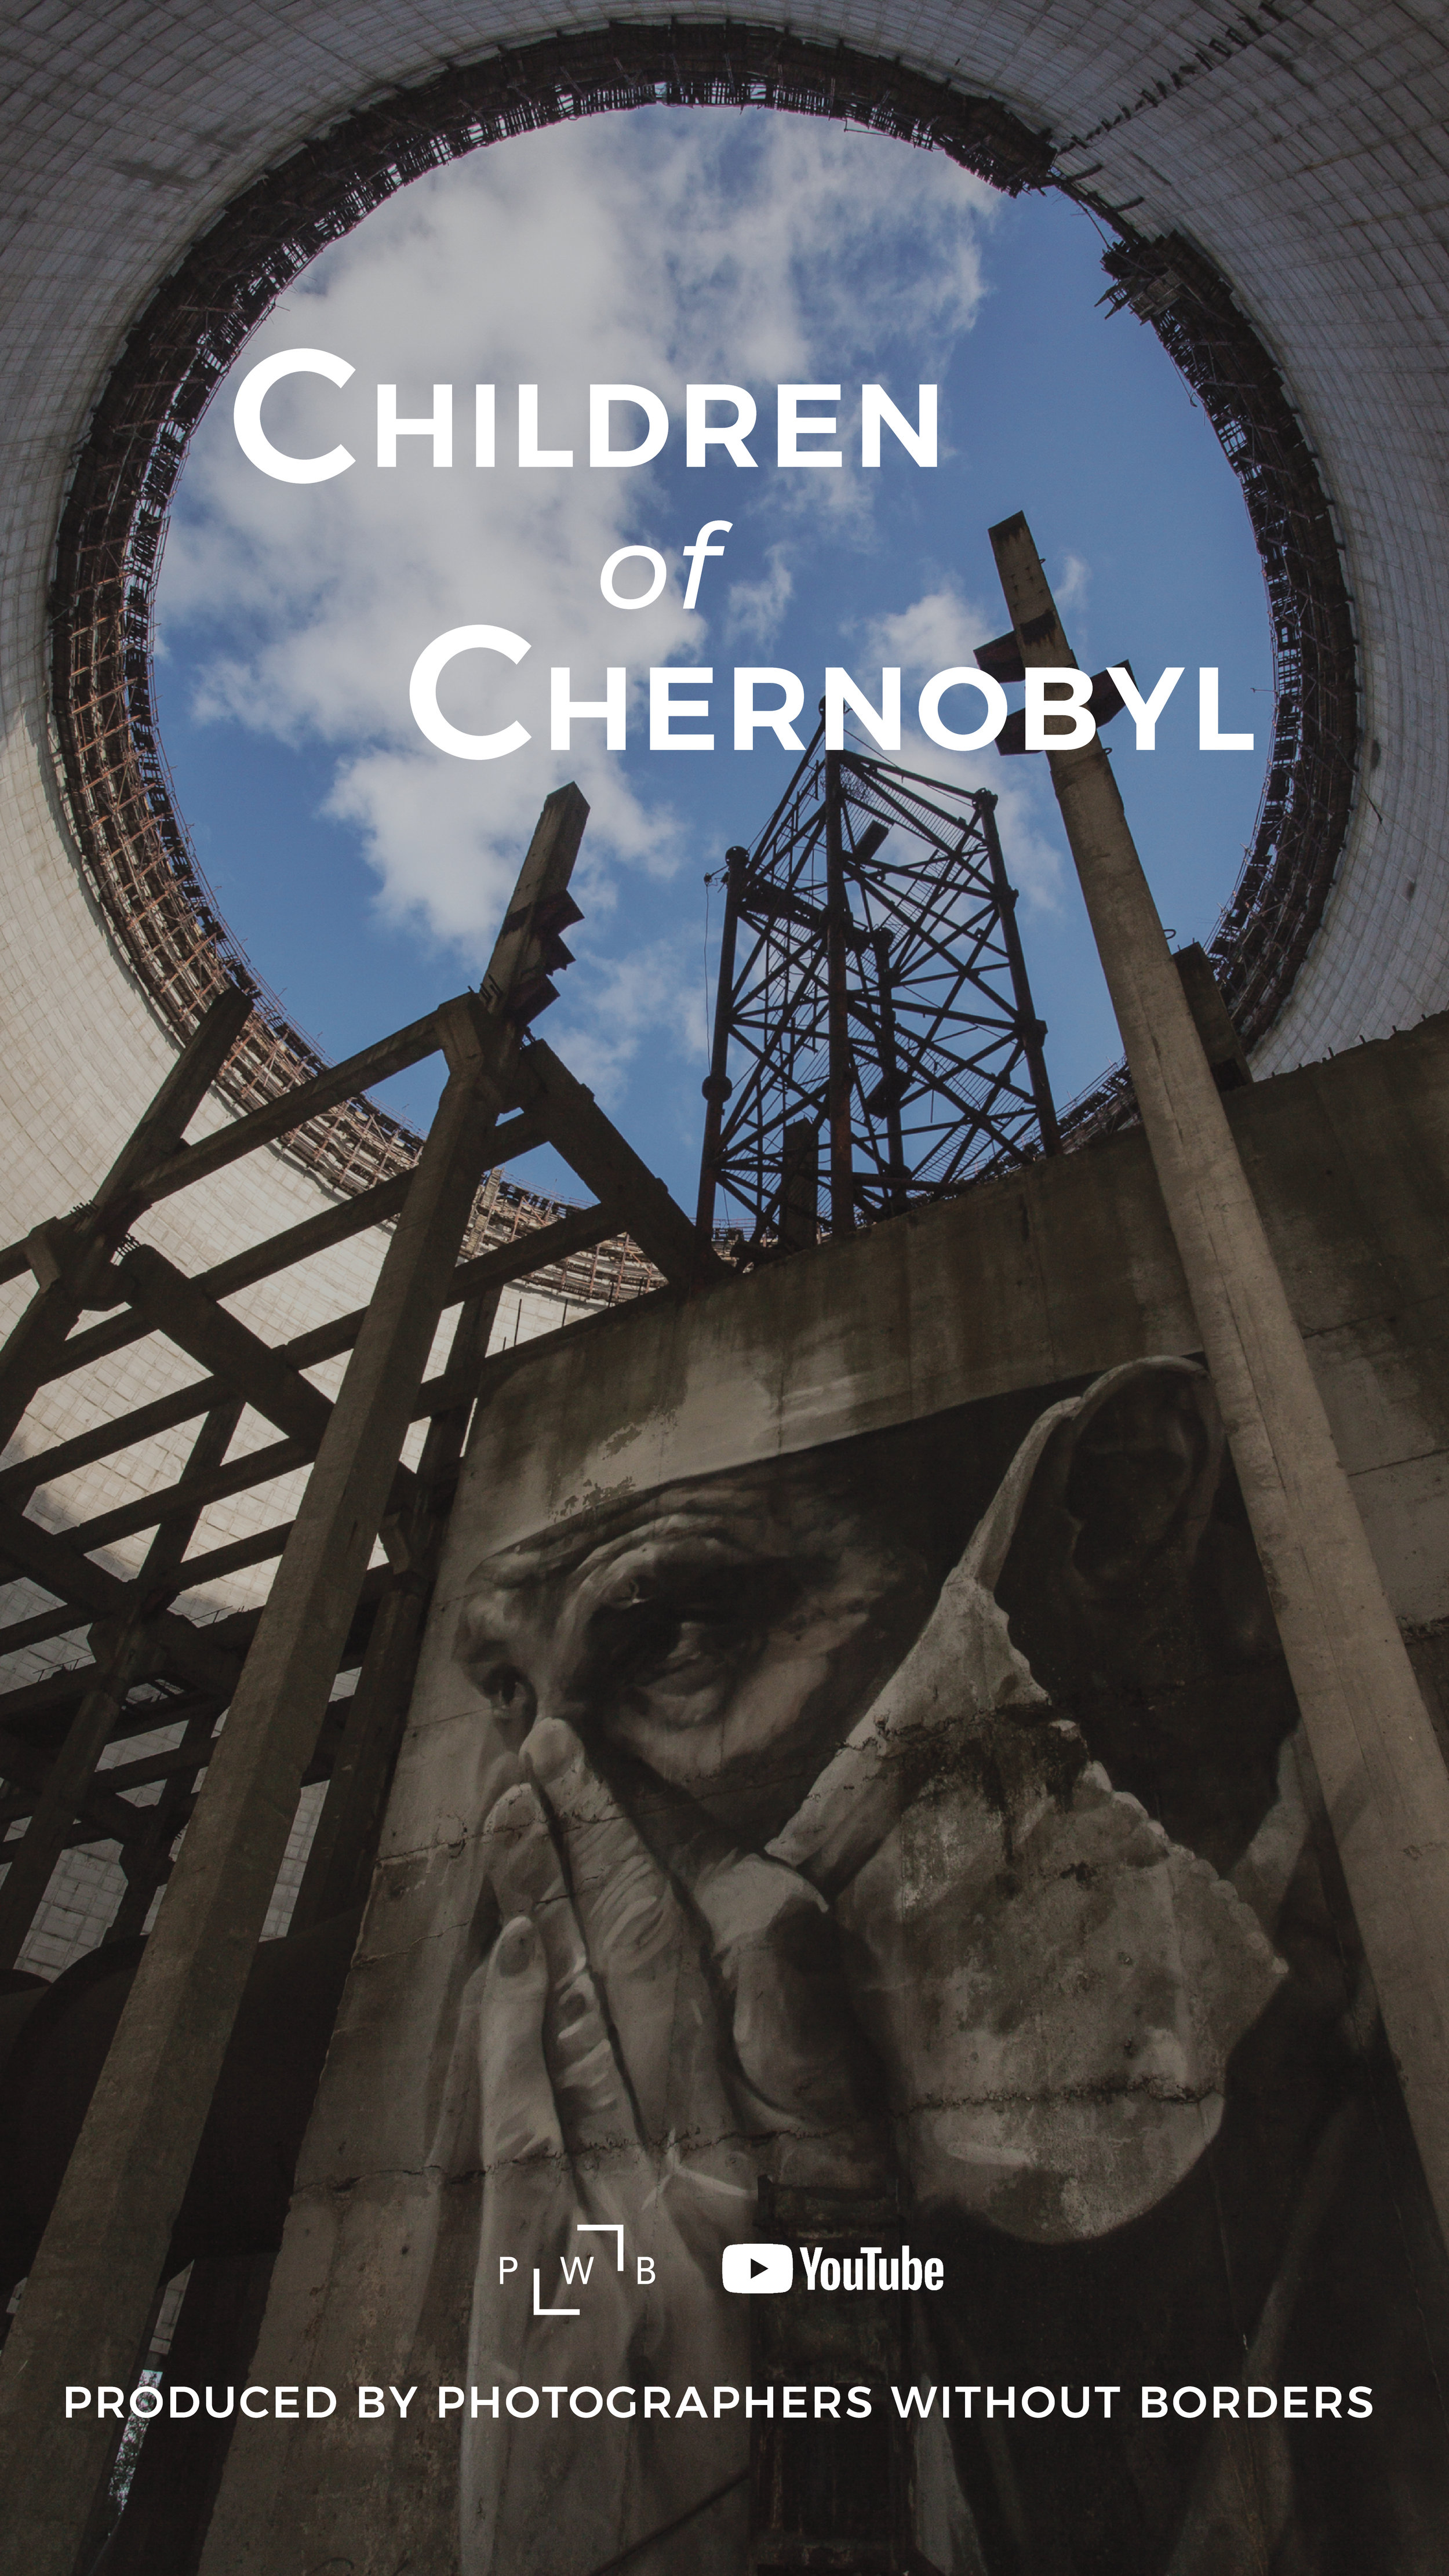 Children of Chernobyl_Story3.jpg